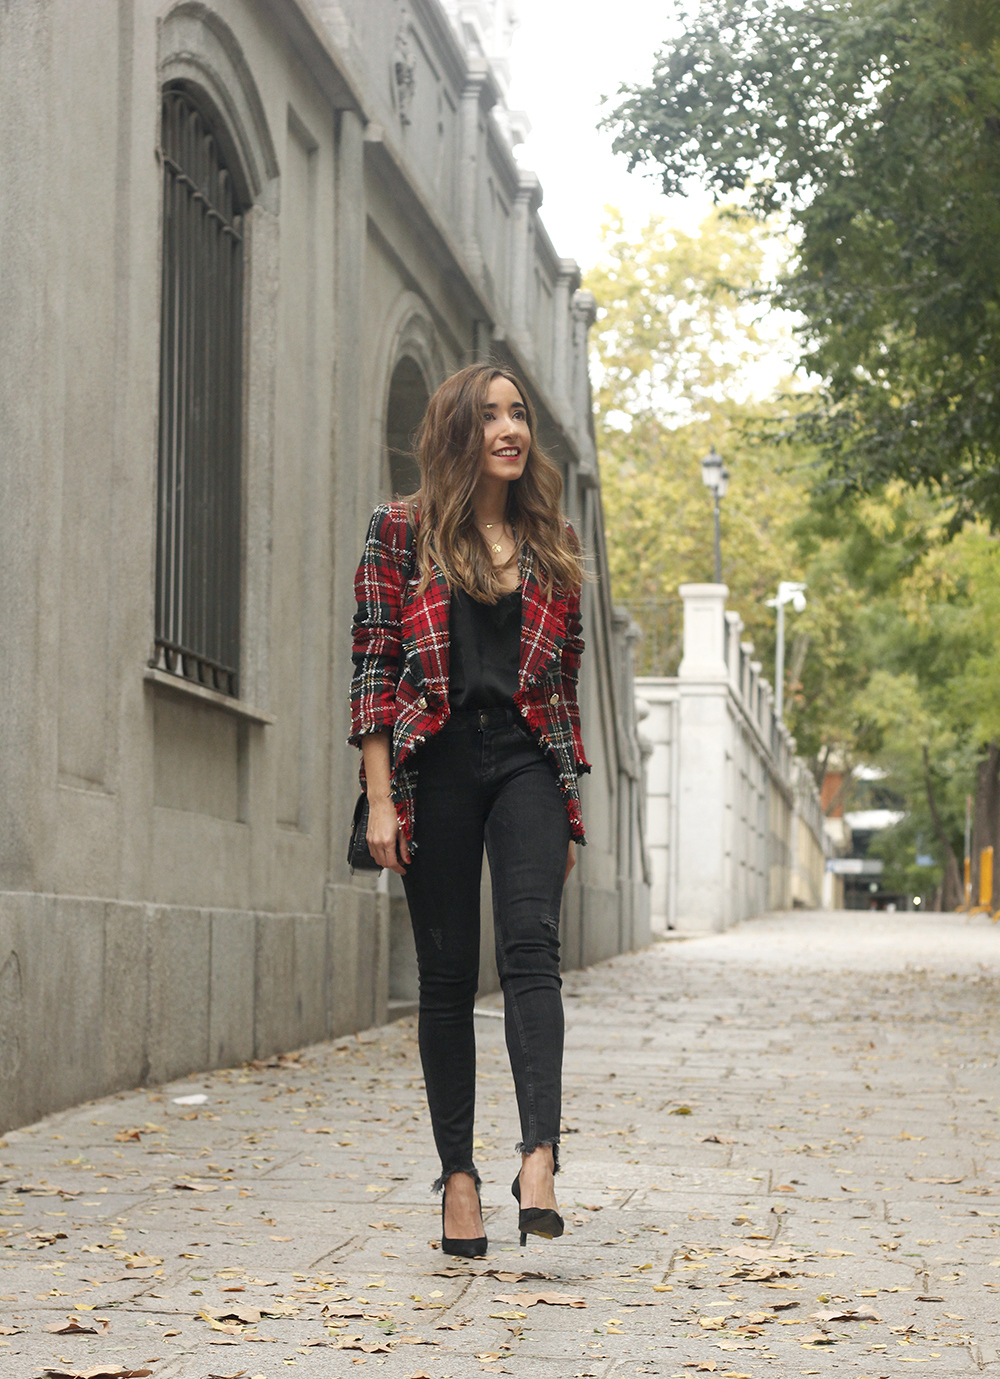 Tartan blazer black outfit heels givenchy bag street style fall outfit 20183892